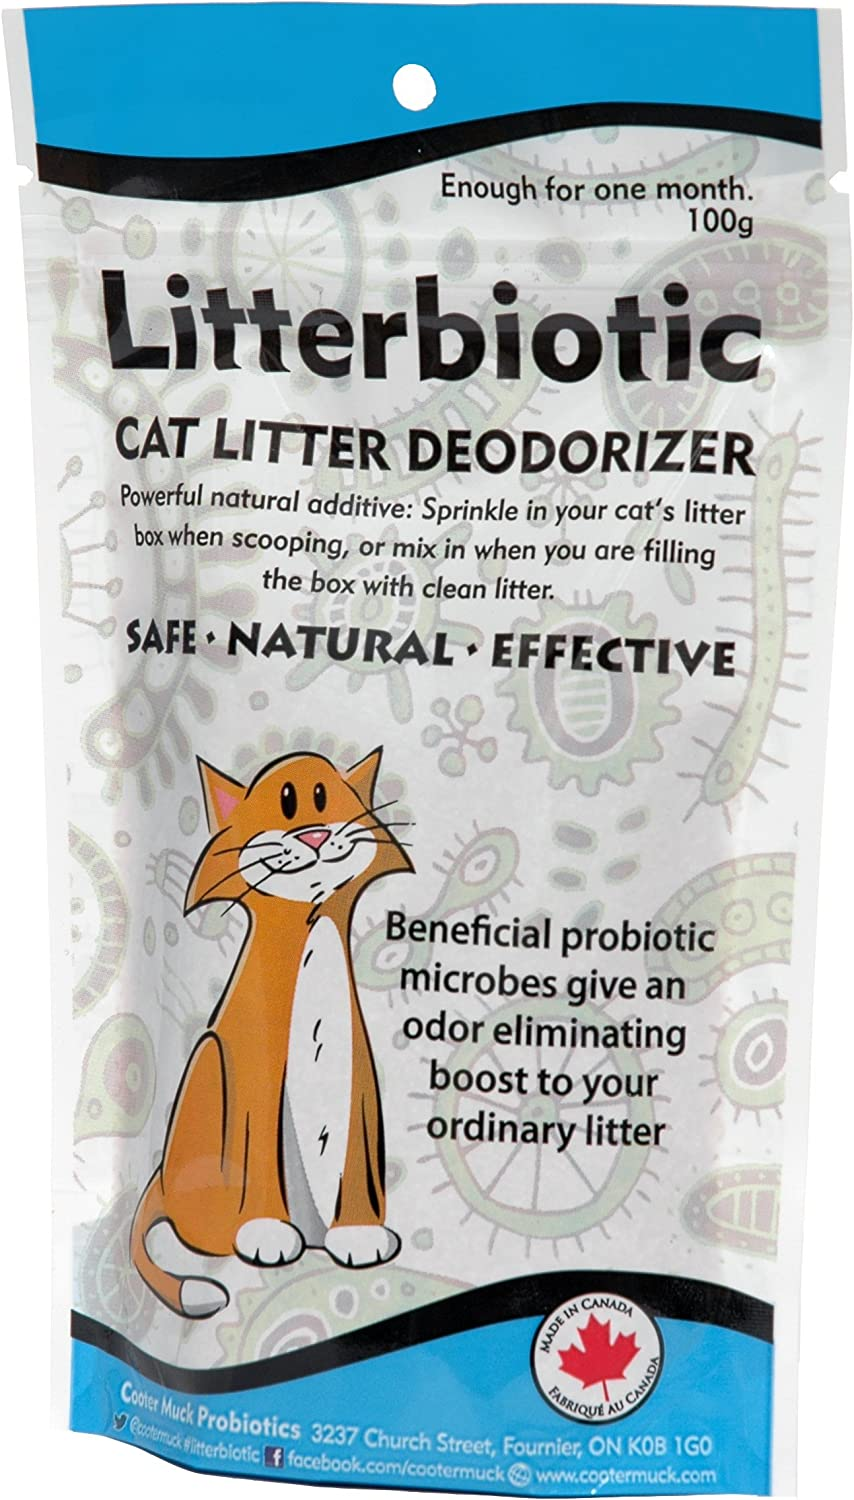 Cat Litter Deodorizer - All Natural - No Perfumes - Keep Your Cat Healthy and Your Home Odor-Free